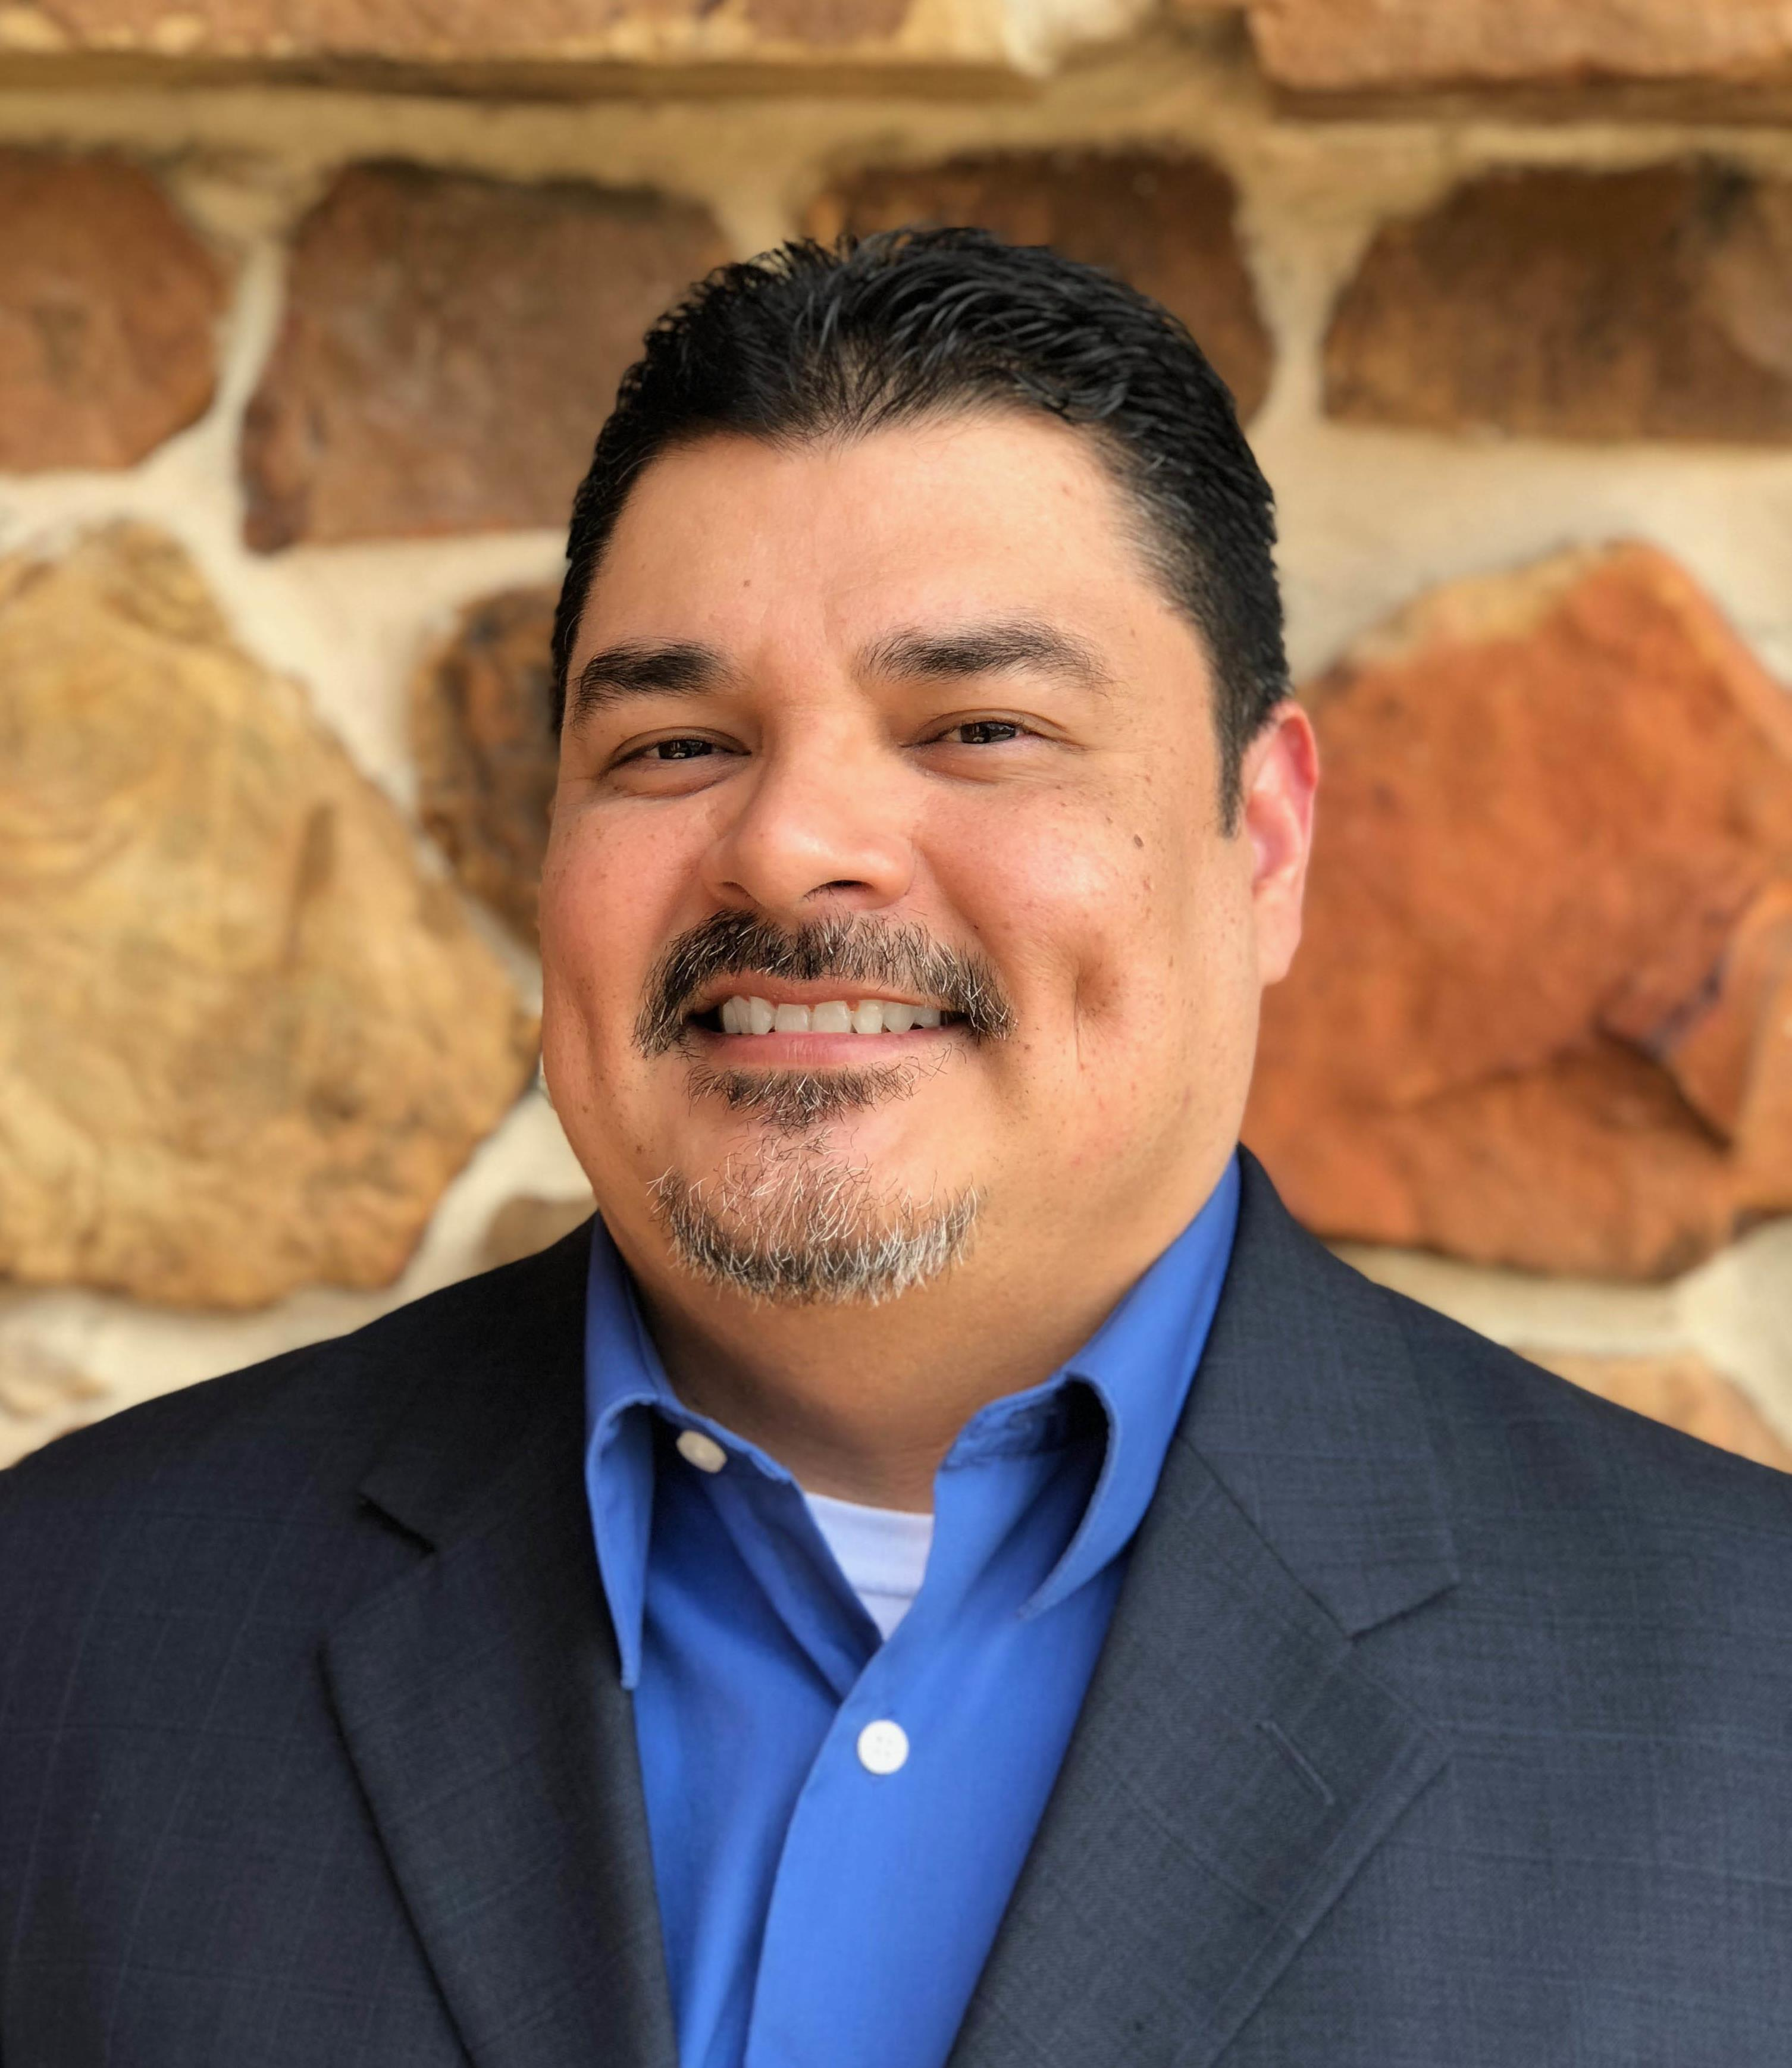 Alfred Alfred is a licensed real estate agent in San Antonio TX